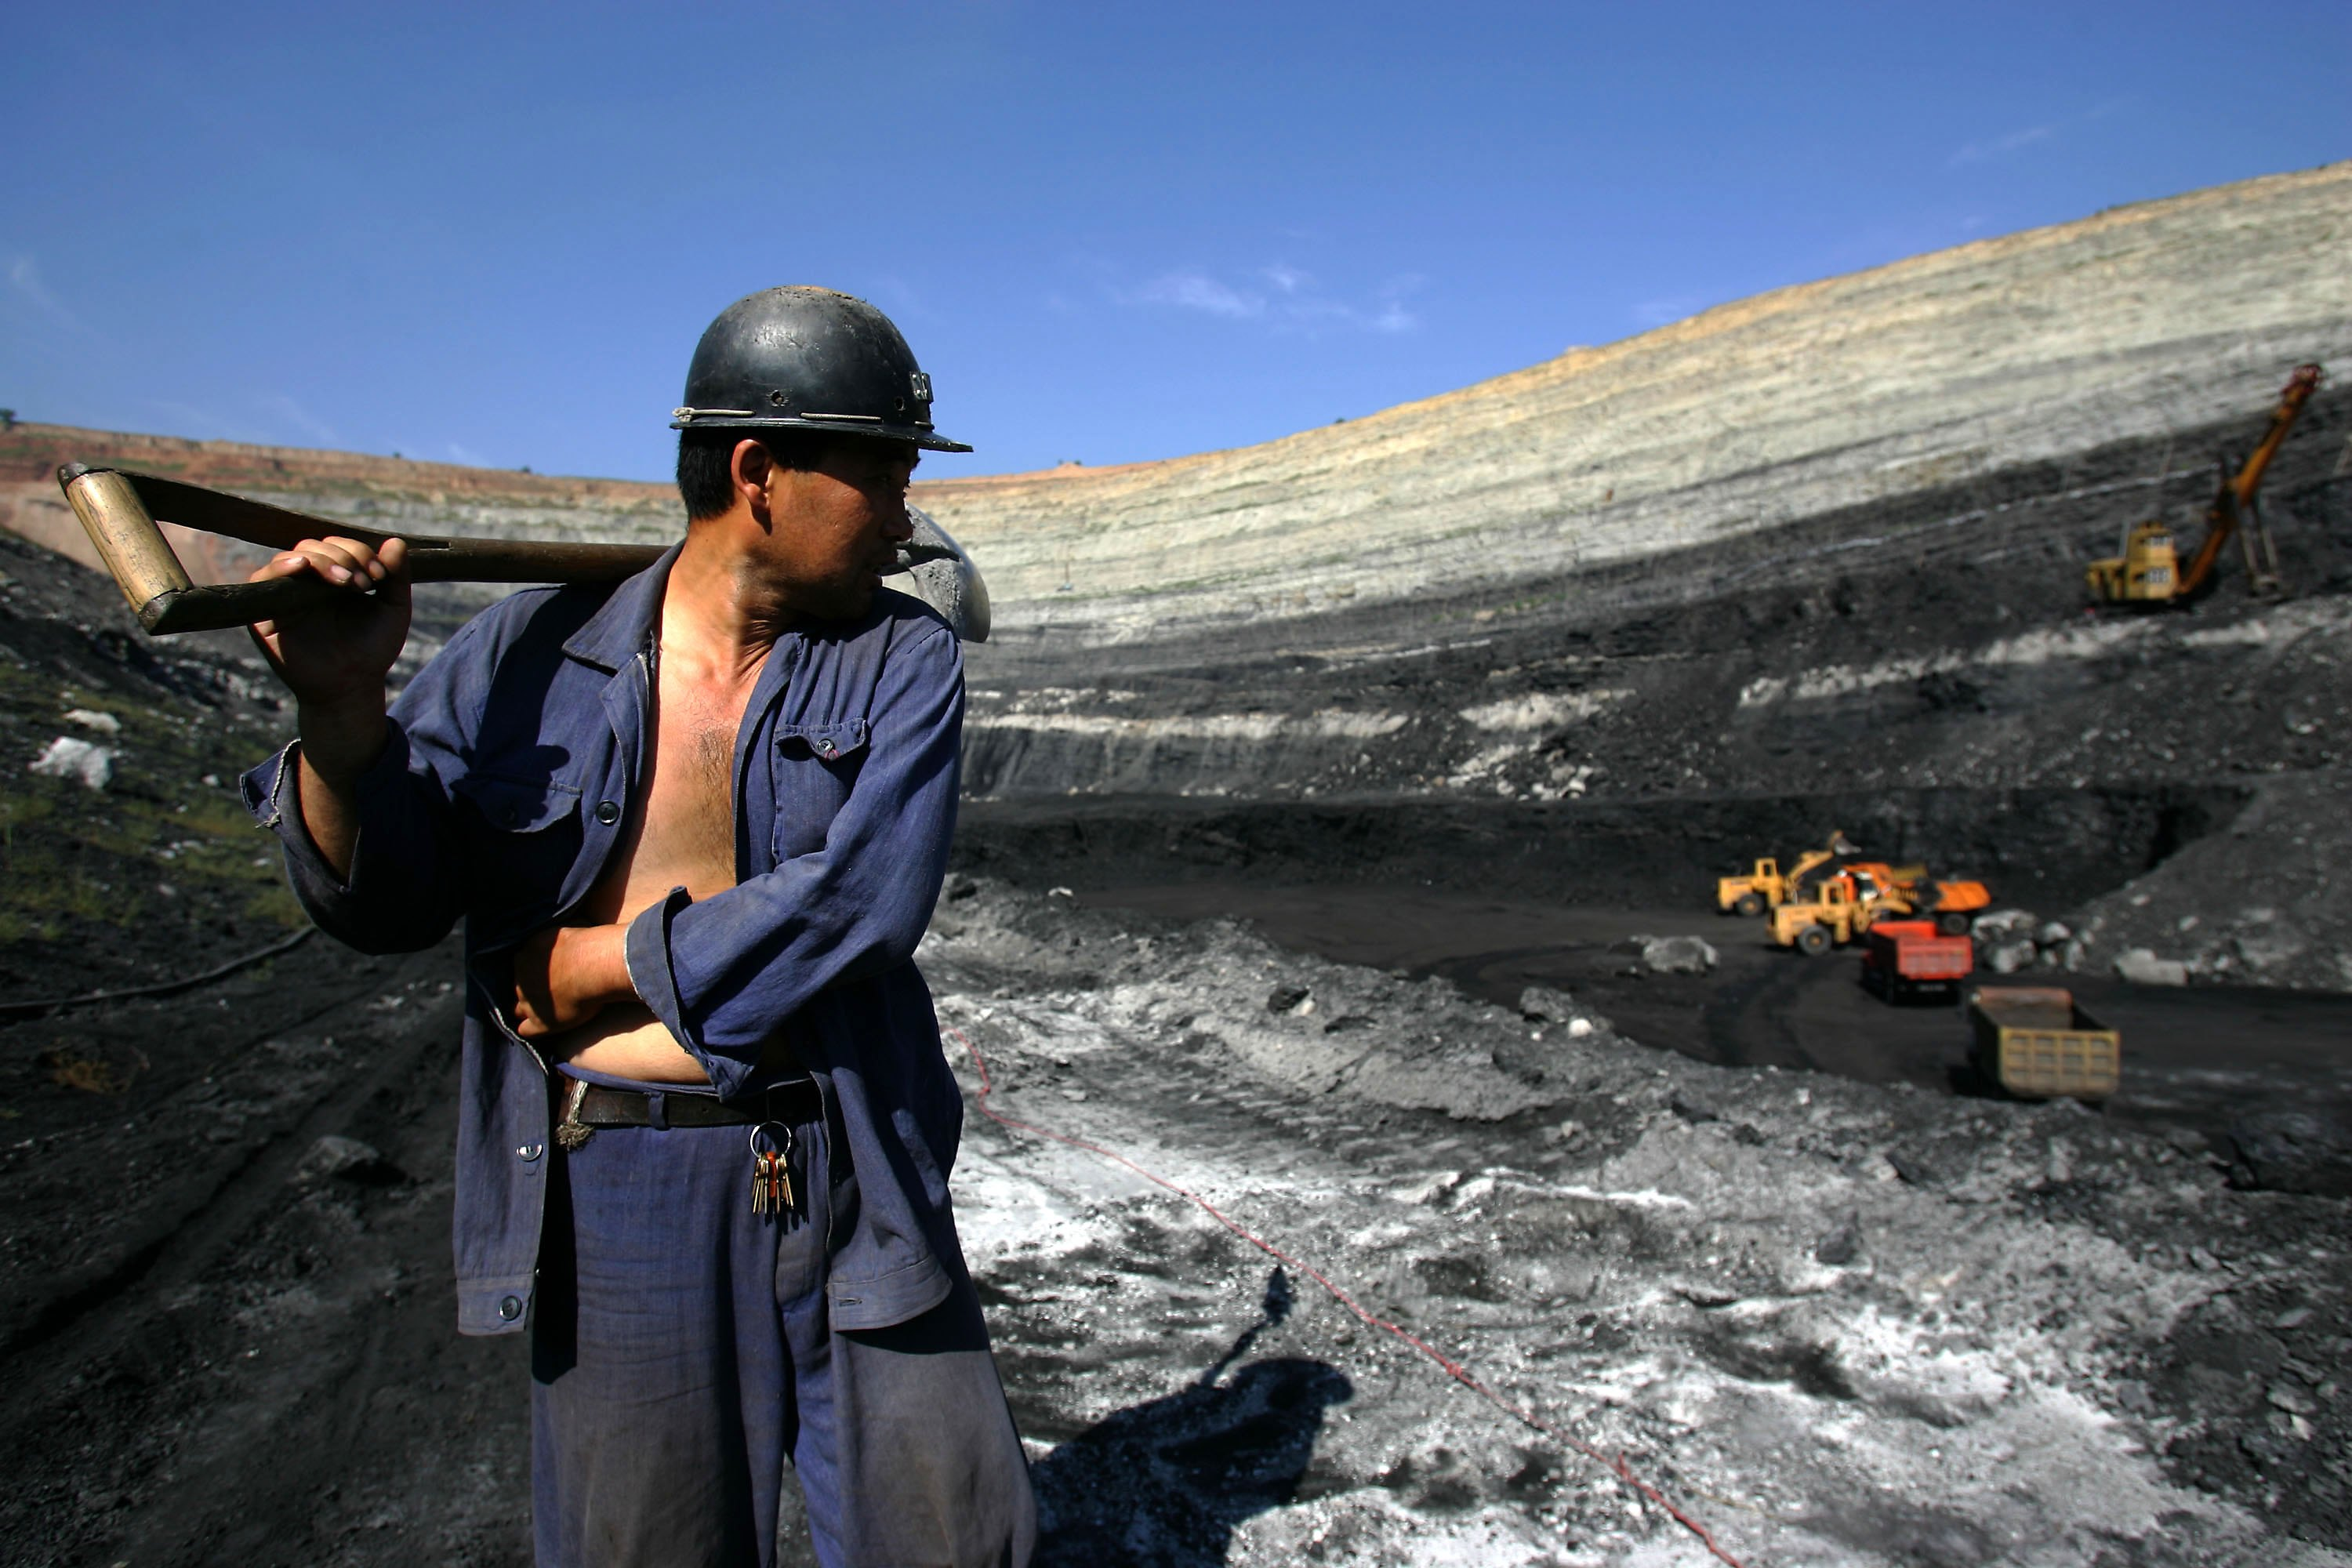 China's Consumption Of Coal Steadily On The Rise